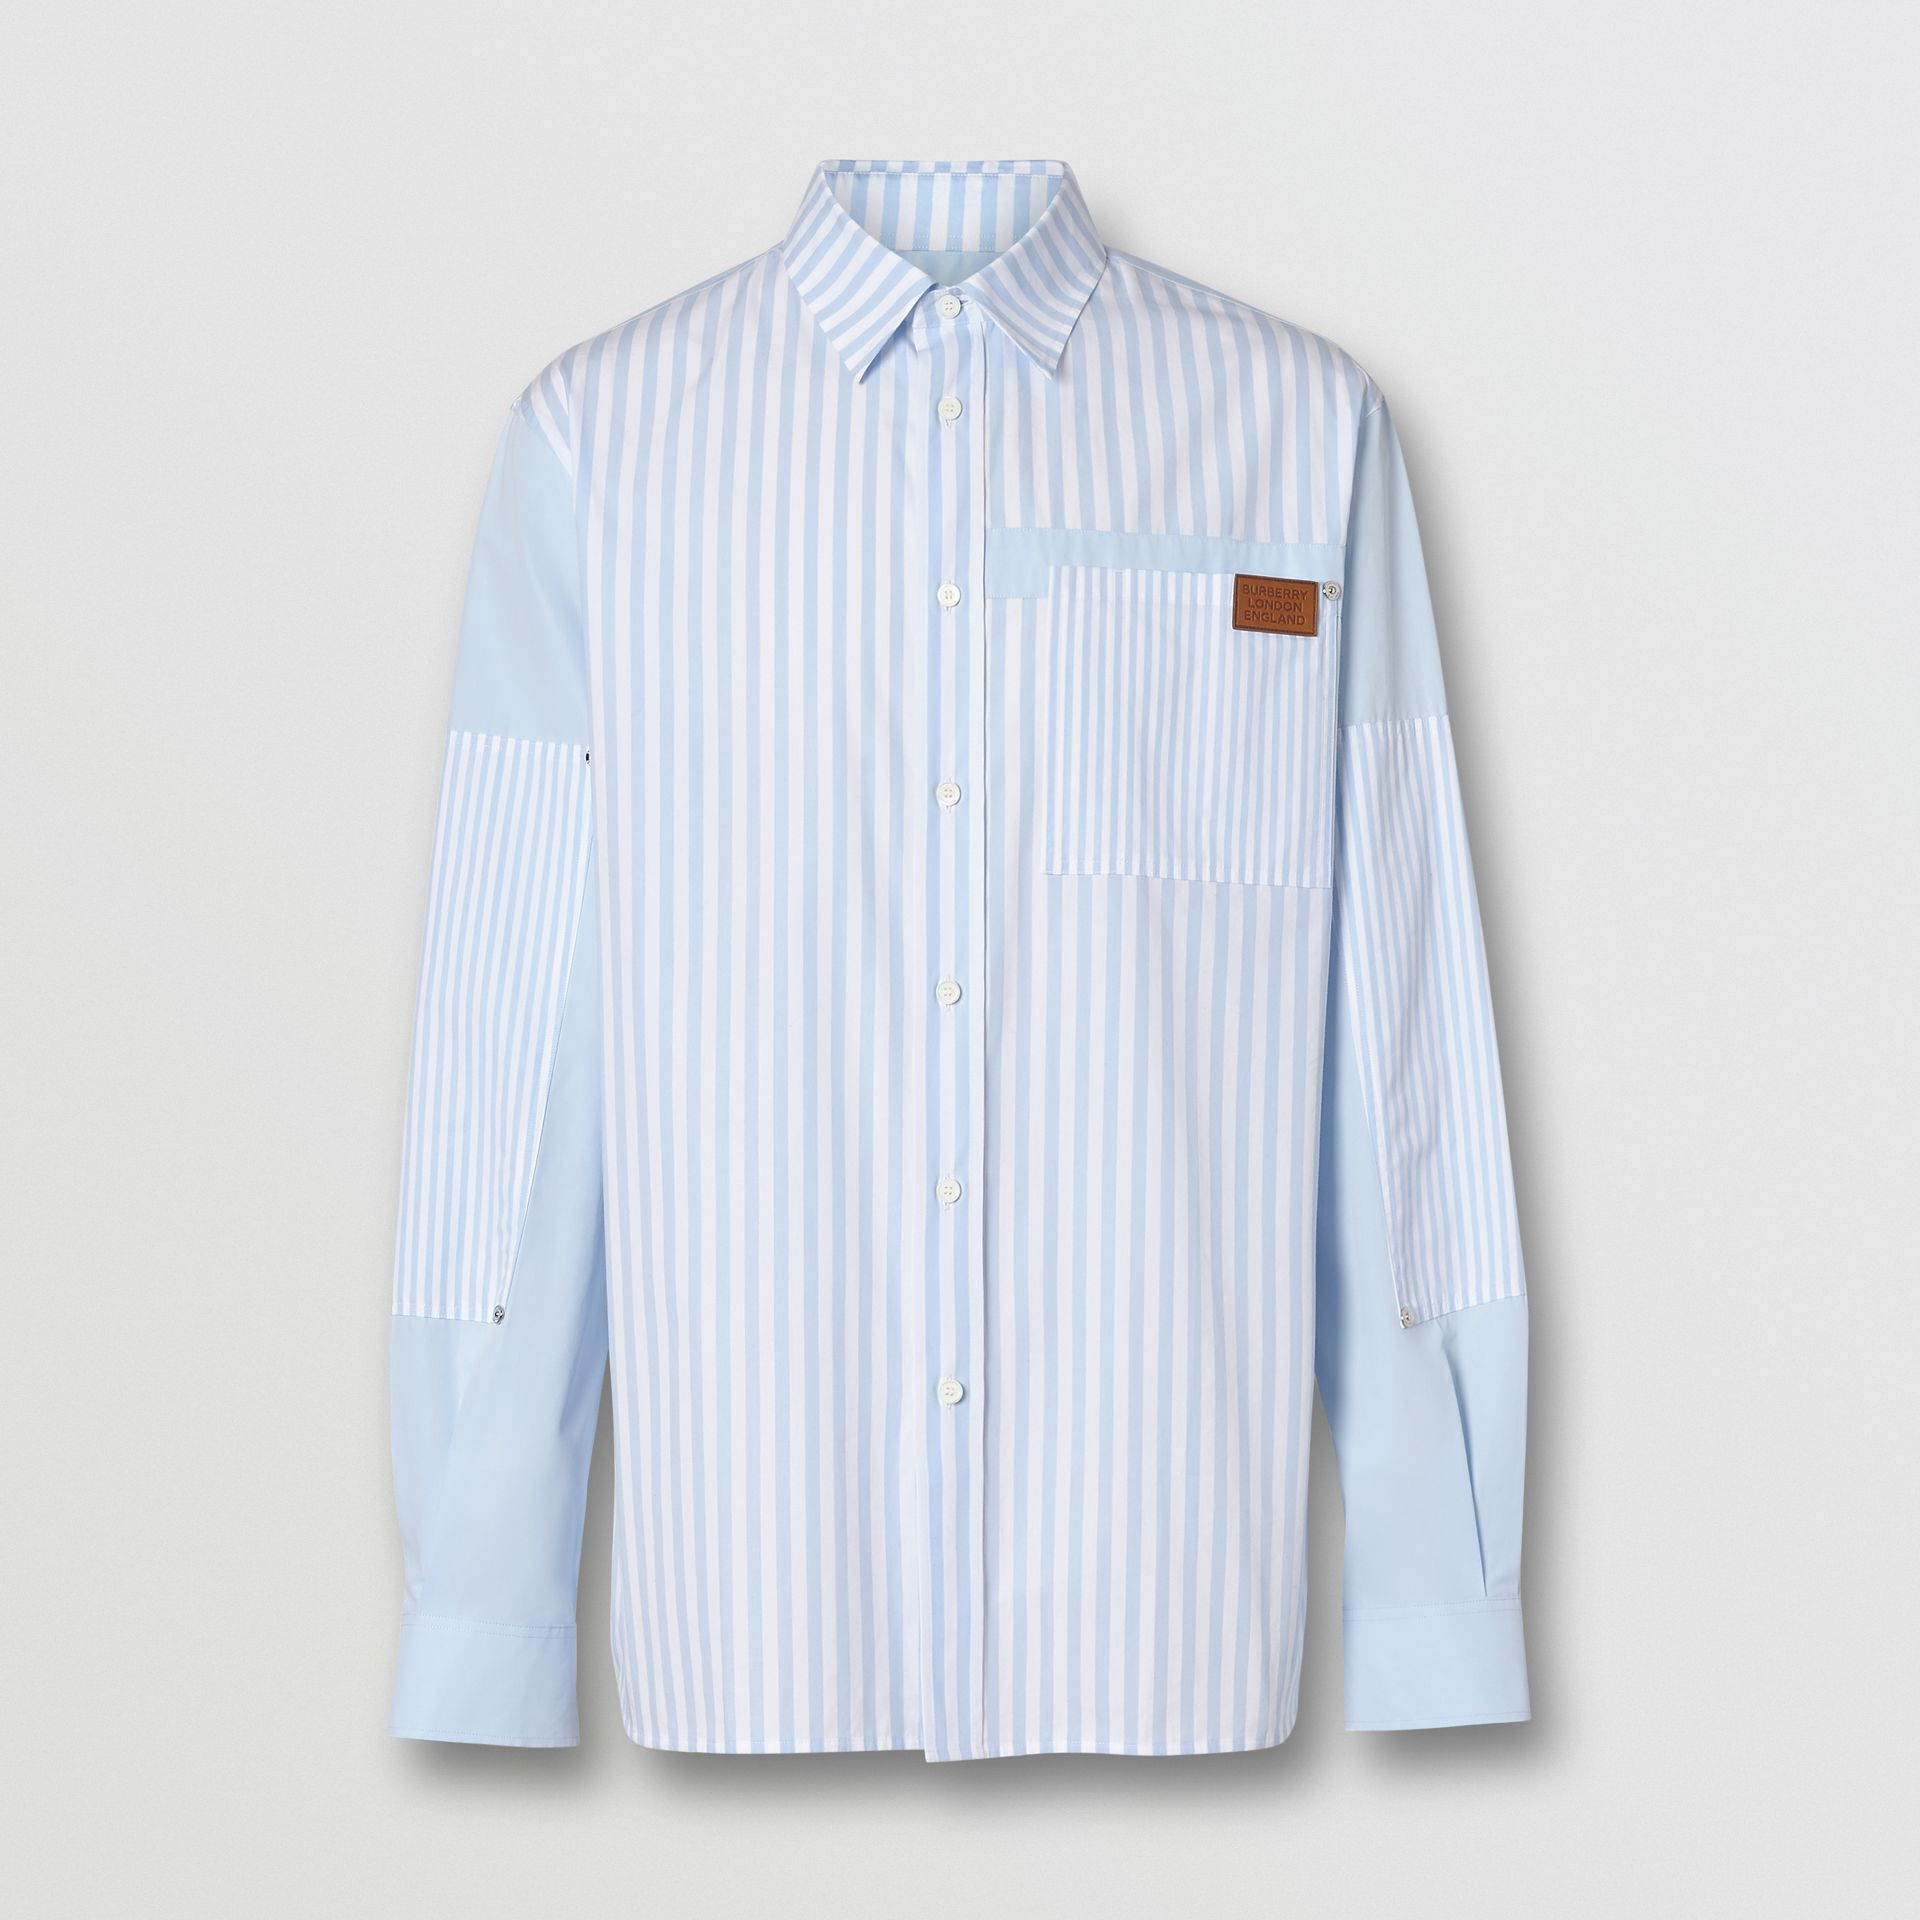 Logo Detail Patchwork Striped Cotton Shirt in Pale Blue Stripe - Men | Burberry United States - gallery image 3